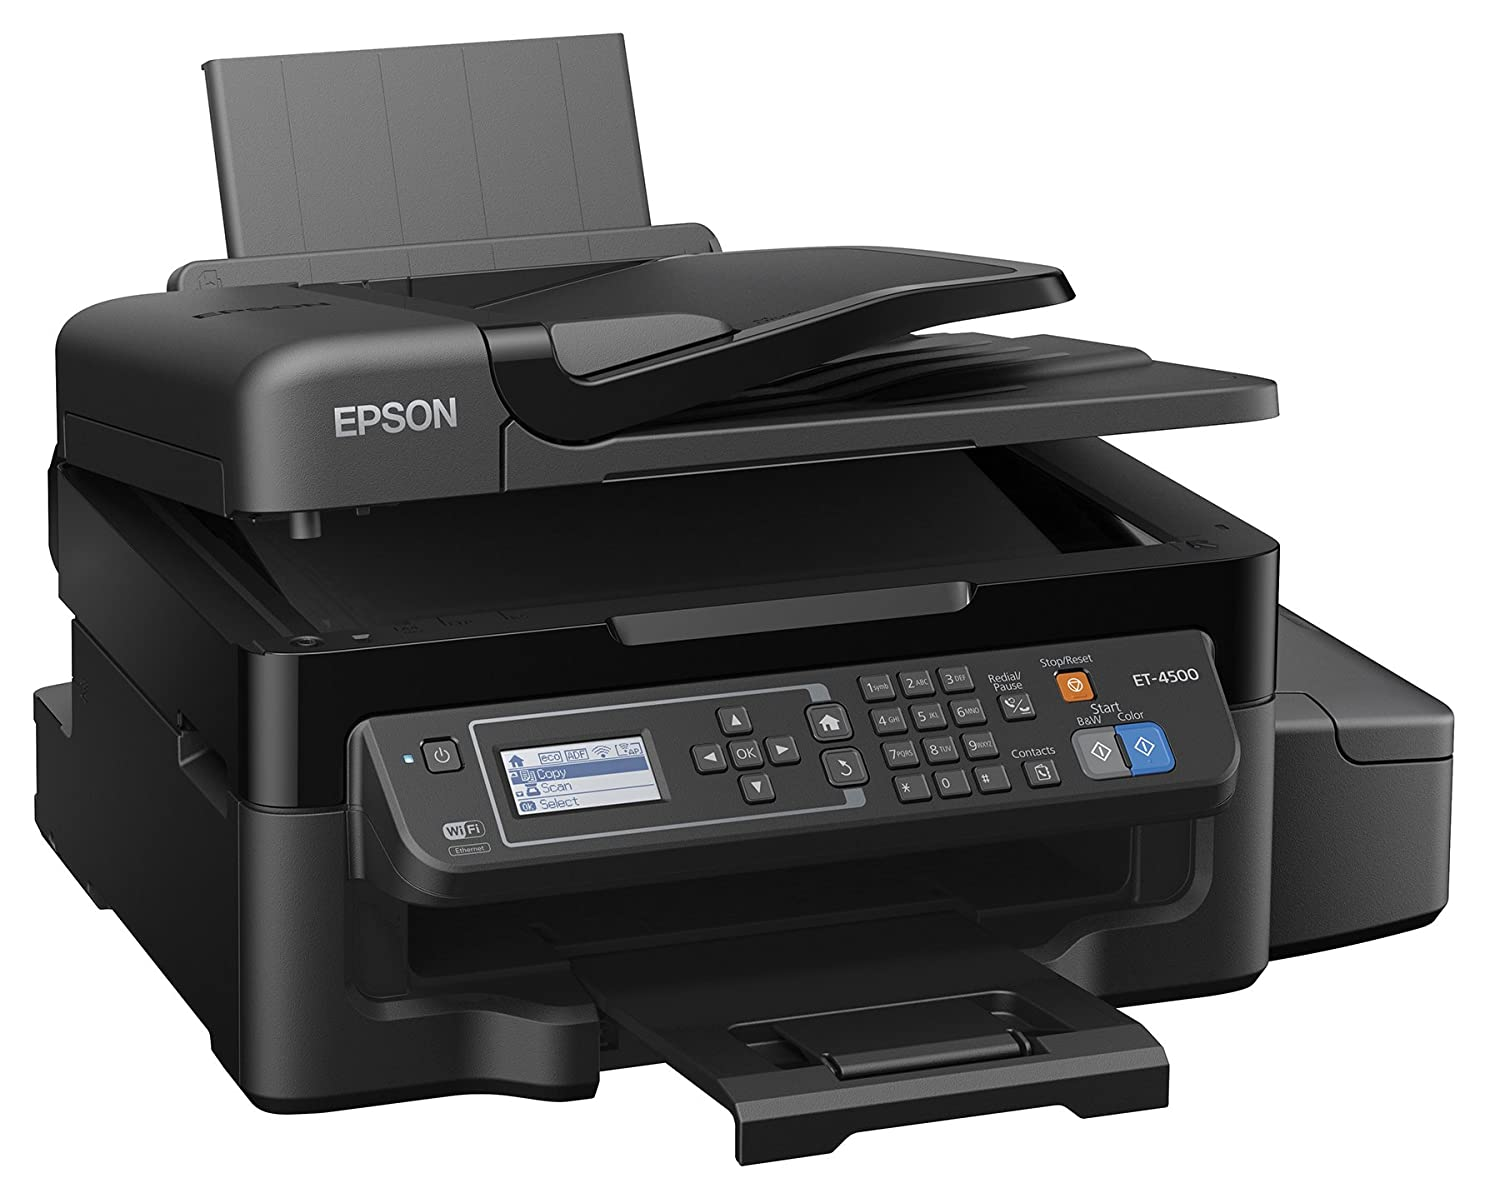 Amazon.com : Epson WorkForce ET-4500 EcoTank Wireless Color All-in-One Supertank Printer with Scanner, Copier, Fax, Ethernet, Wi-Fi, Wi-Fi Direct, Tablet and Smartphone (iPad, iPhone, Android) Printing, Easily Refillable Ink Tanks